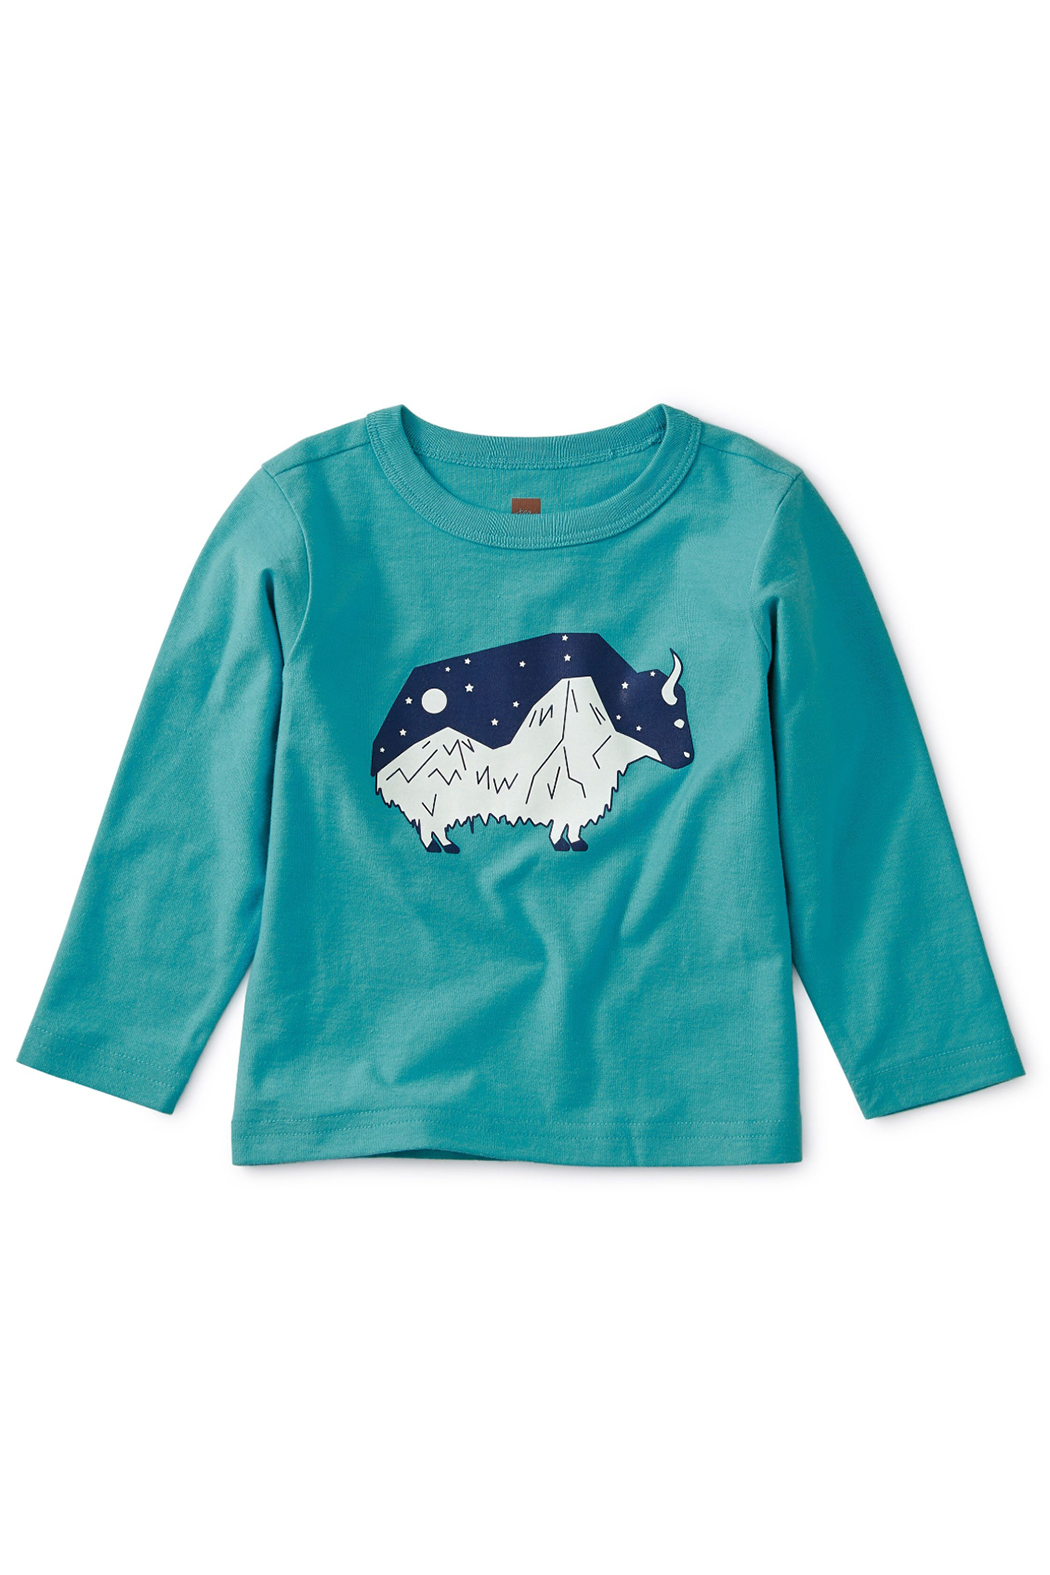 Tea Collection Glow in the Dark Baby Yak Tee - Main Image